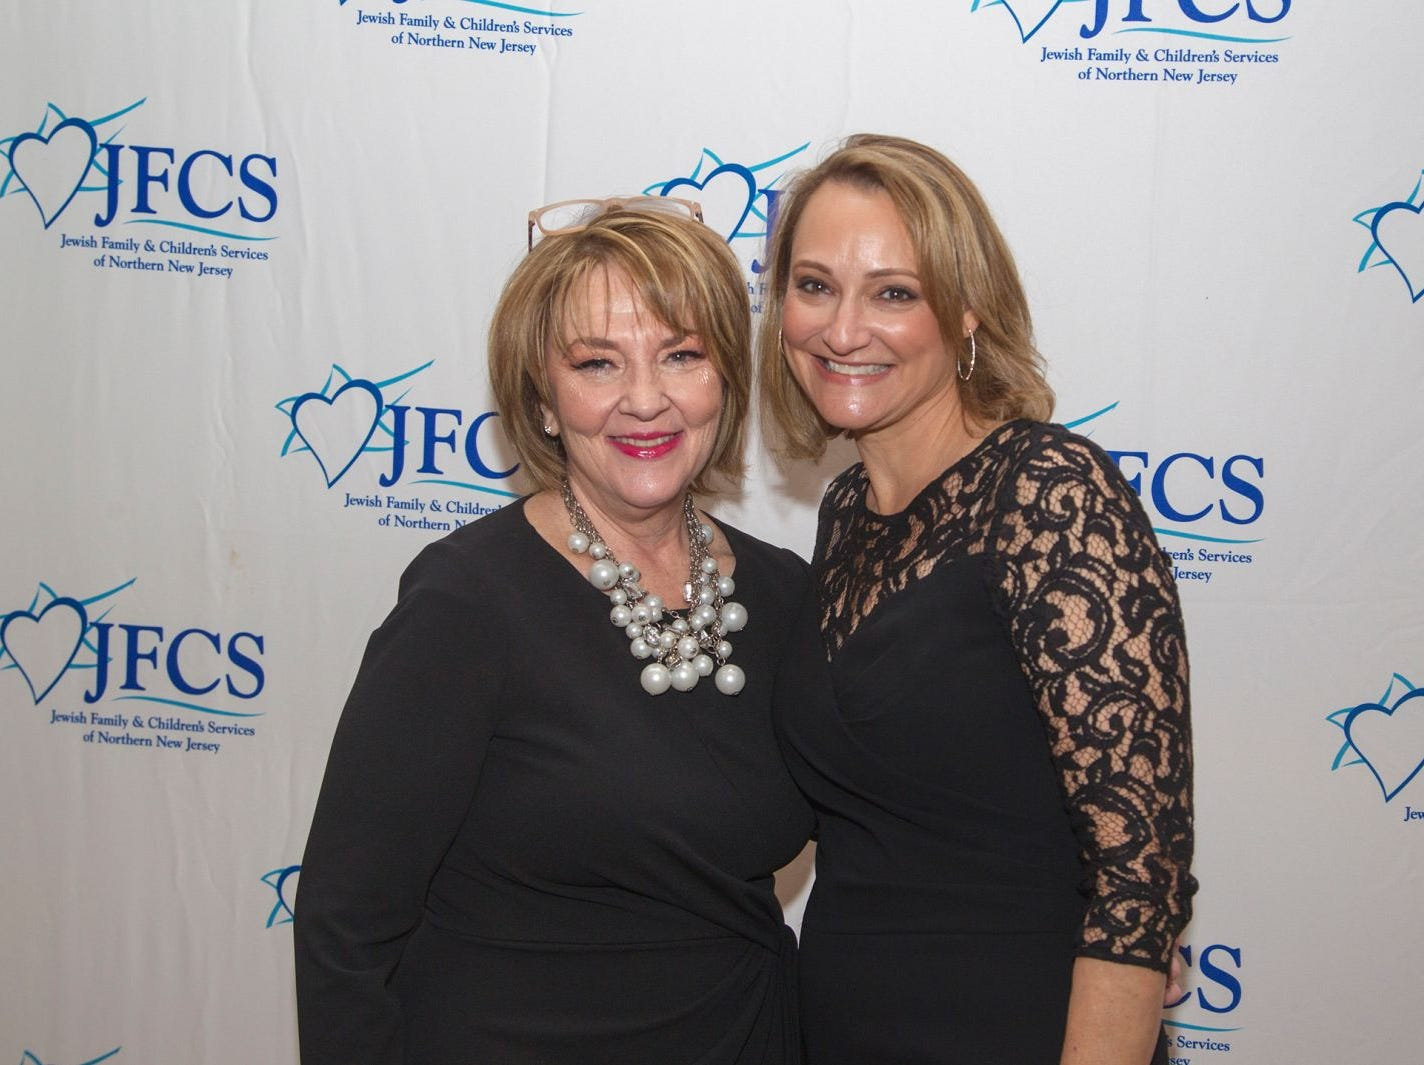 Susan Greenbaum, Debbie Harris. Jewish Family & Children's Services of Northern New Jersey held its annual gala at the Edgewood Country Club in River Vale. The evening honored Shira Feuerstein, Jayne Petak, and Alan Scharfstein for their leadership, support, and dedication. 11/18/2018